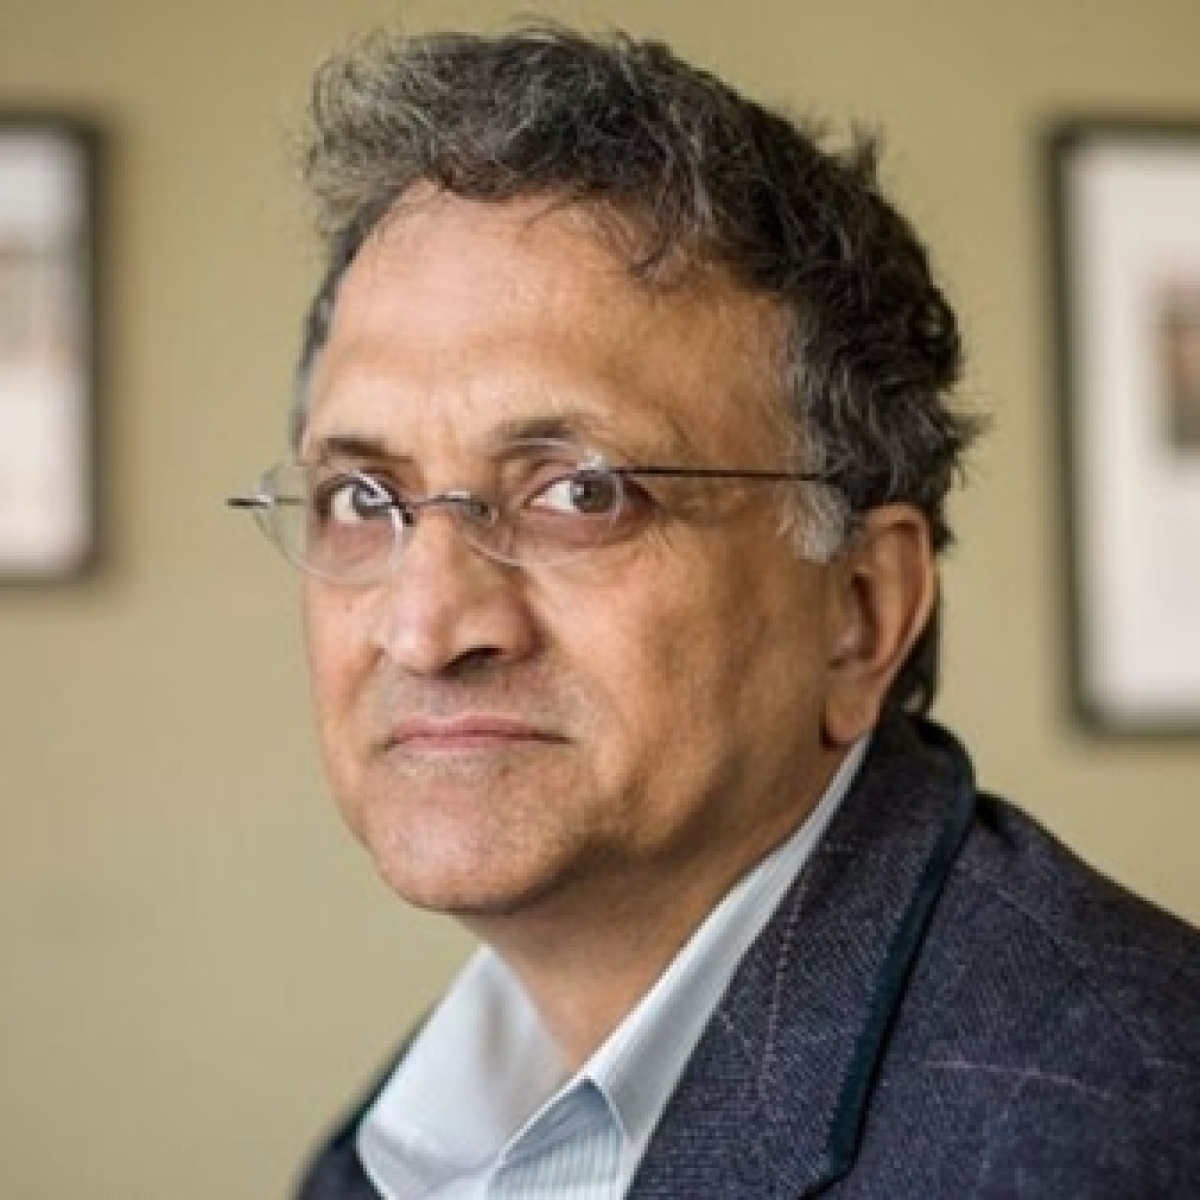 'Modi's new India punishes those who stand for innocent victims': Congress slams FIR against Ramchandra Guha and Co